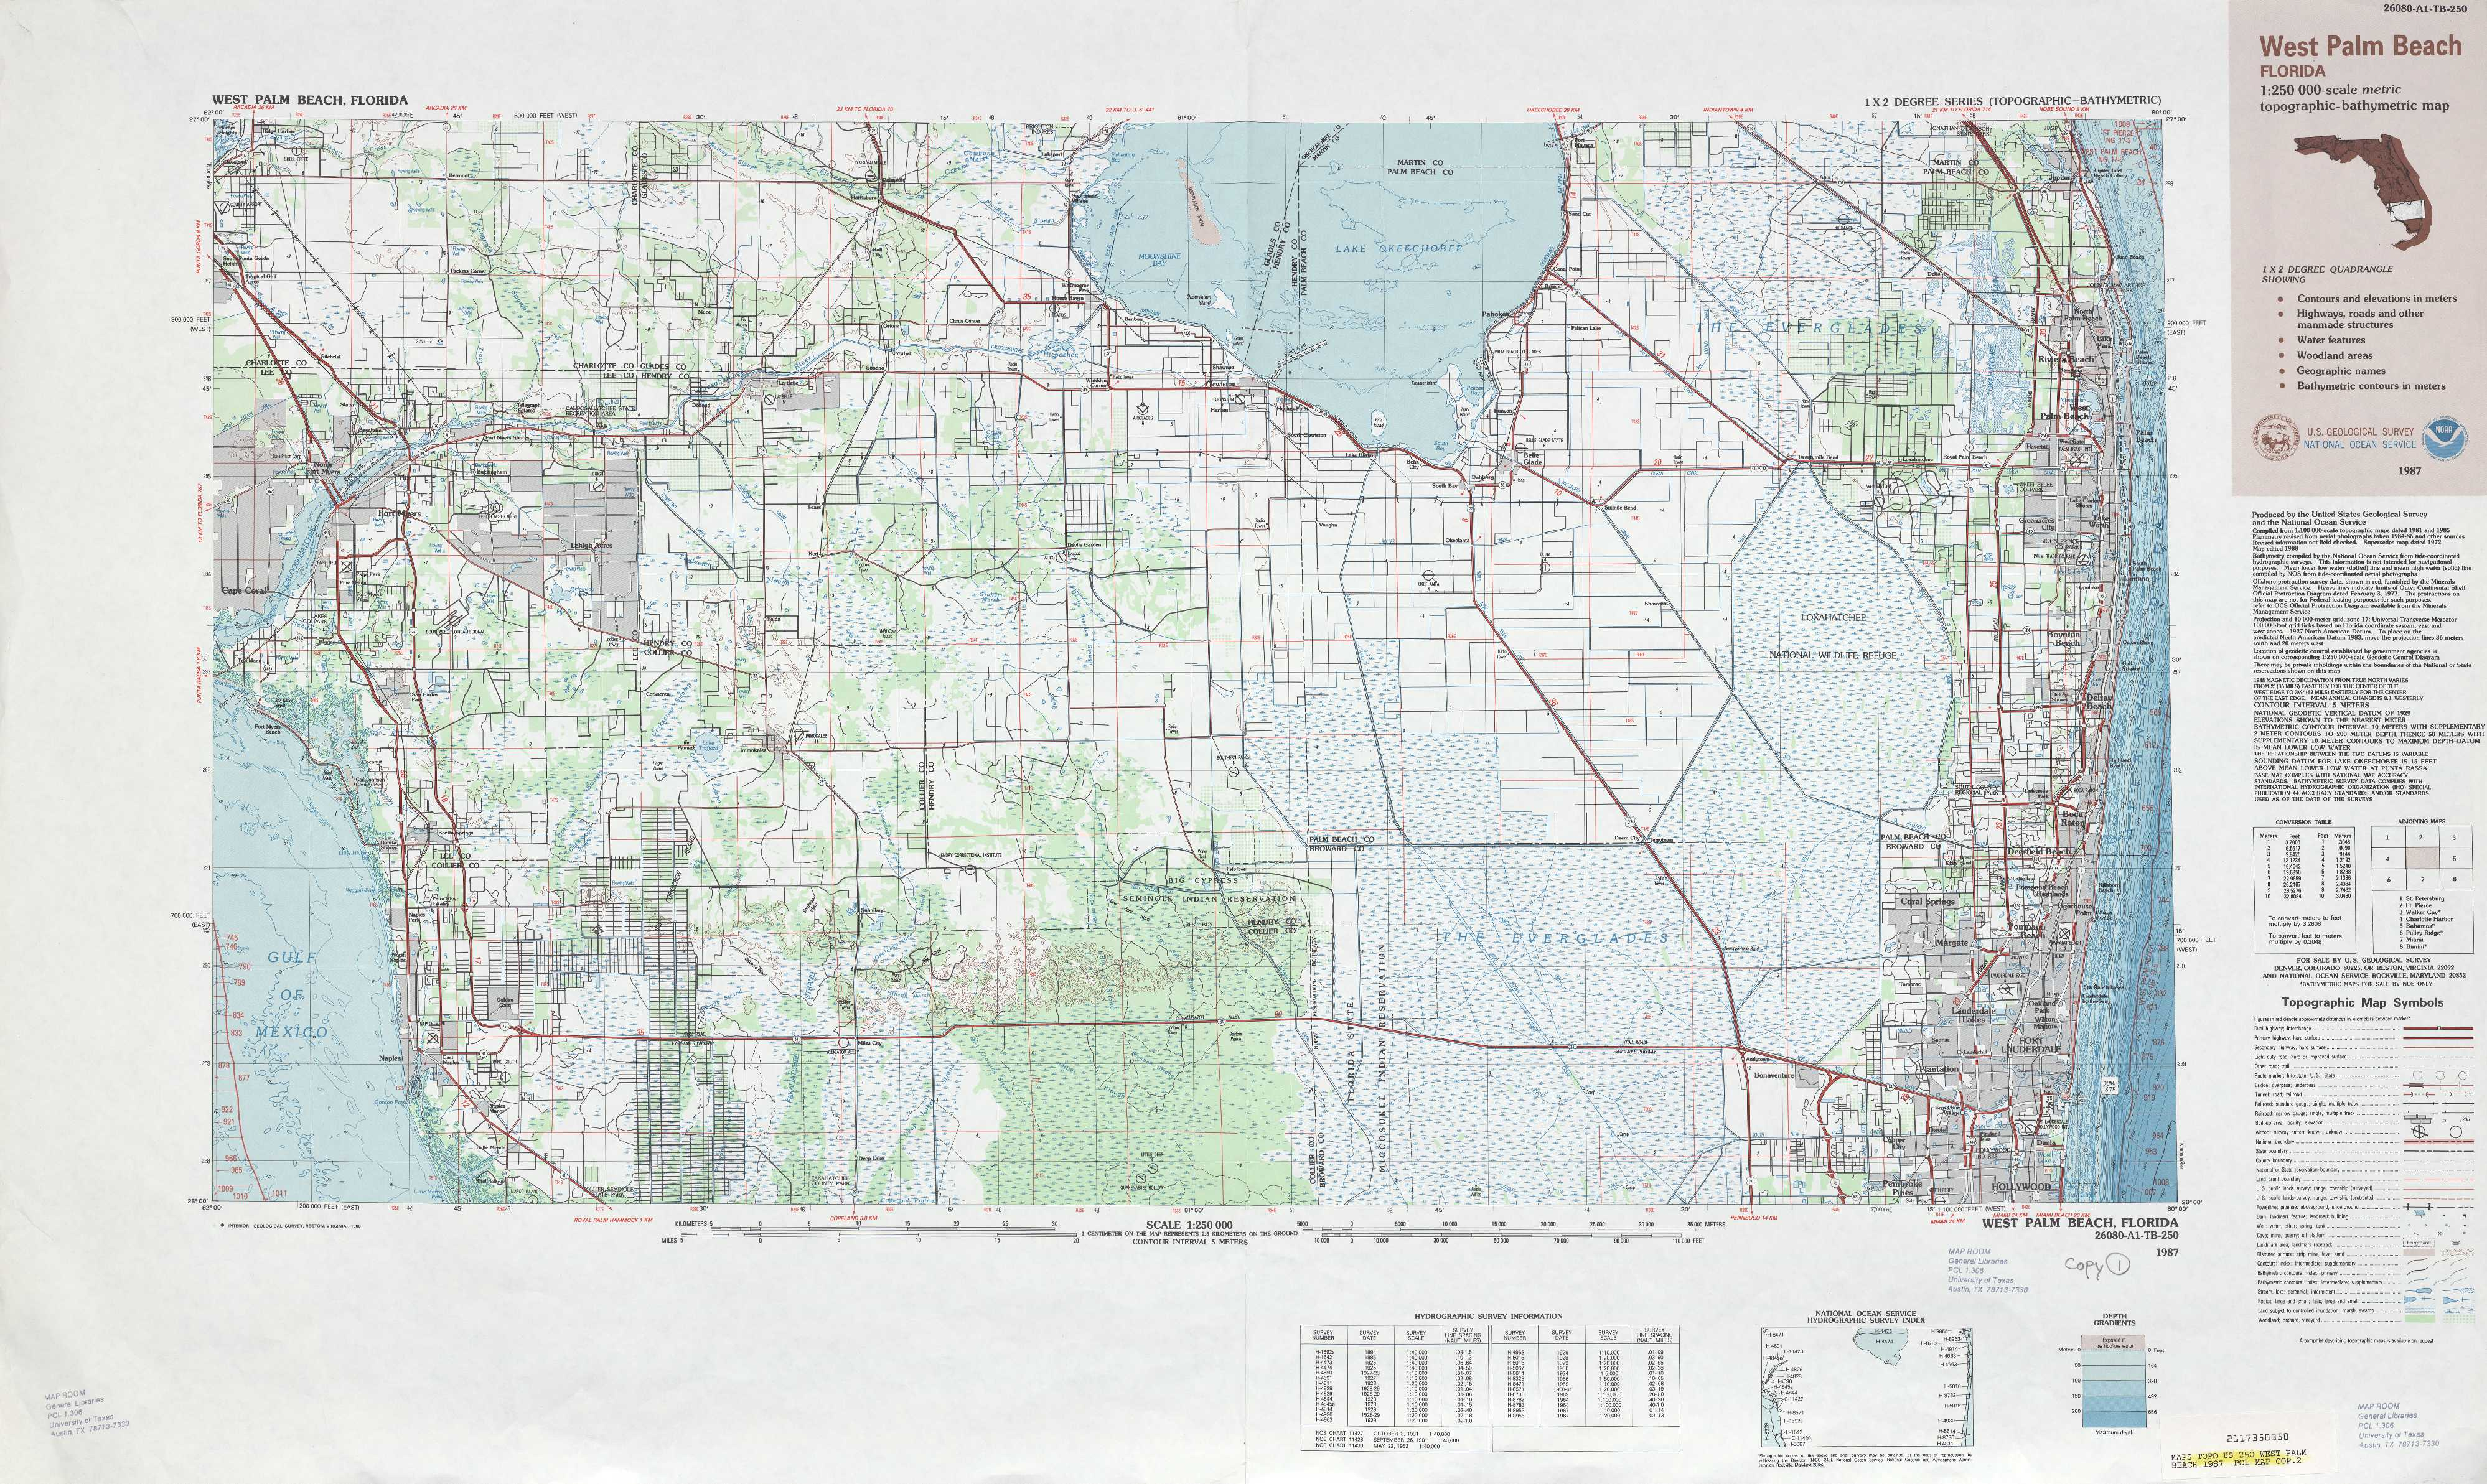 West Palm Beach Topographic Maps, Fl - Usgs Topo Quad 26080A1 At 1 - Usgs Topographic Maps Florida